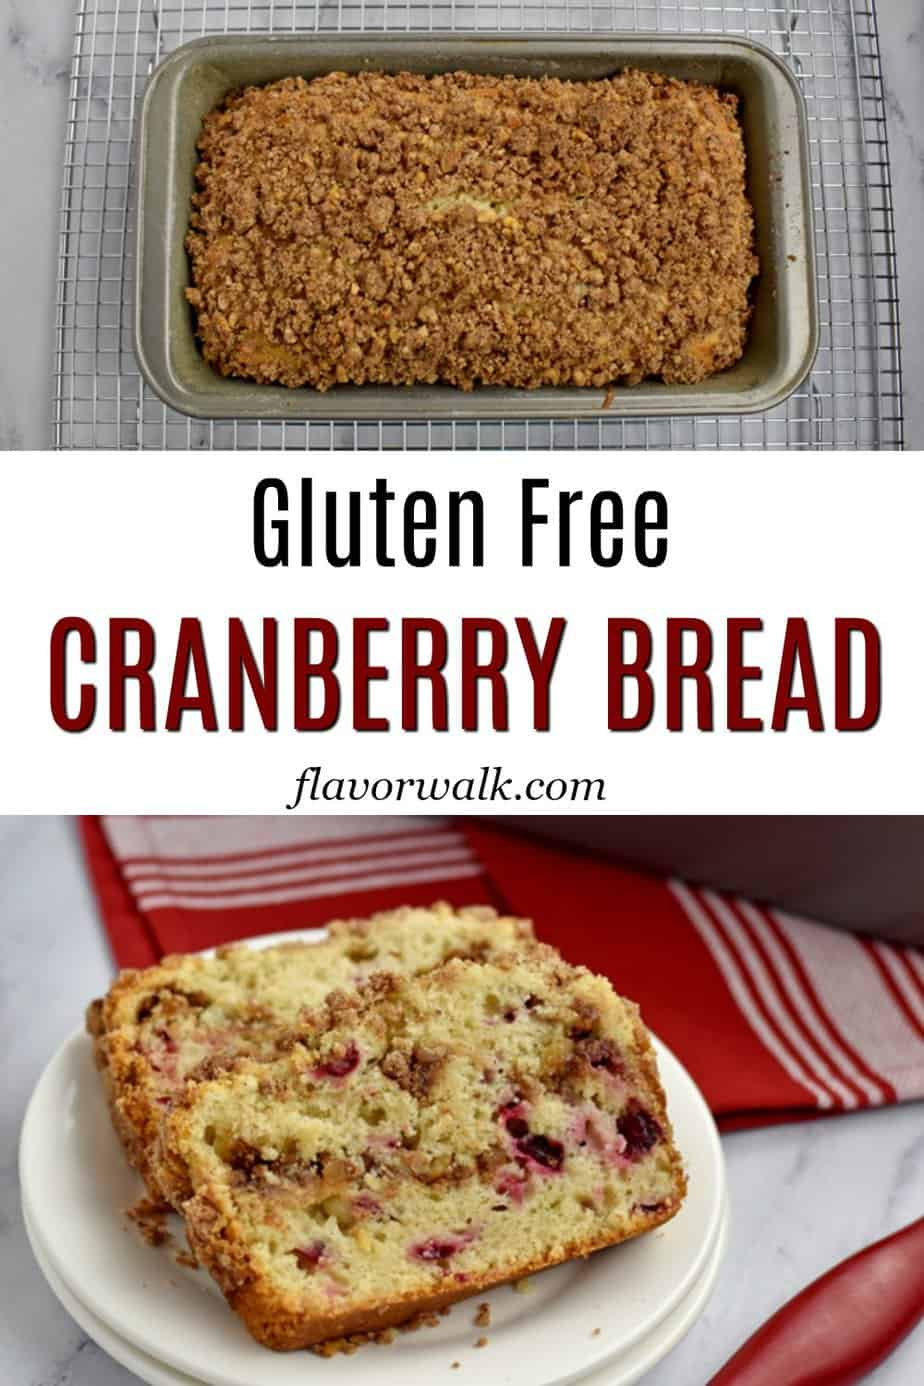 top image is baked gluten free cranberry bread in loaf pan, text in the middle, and bottom image is 2 slices of cranberry bread on white plates